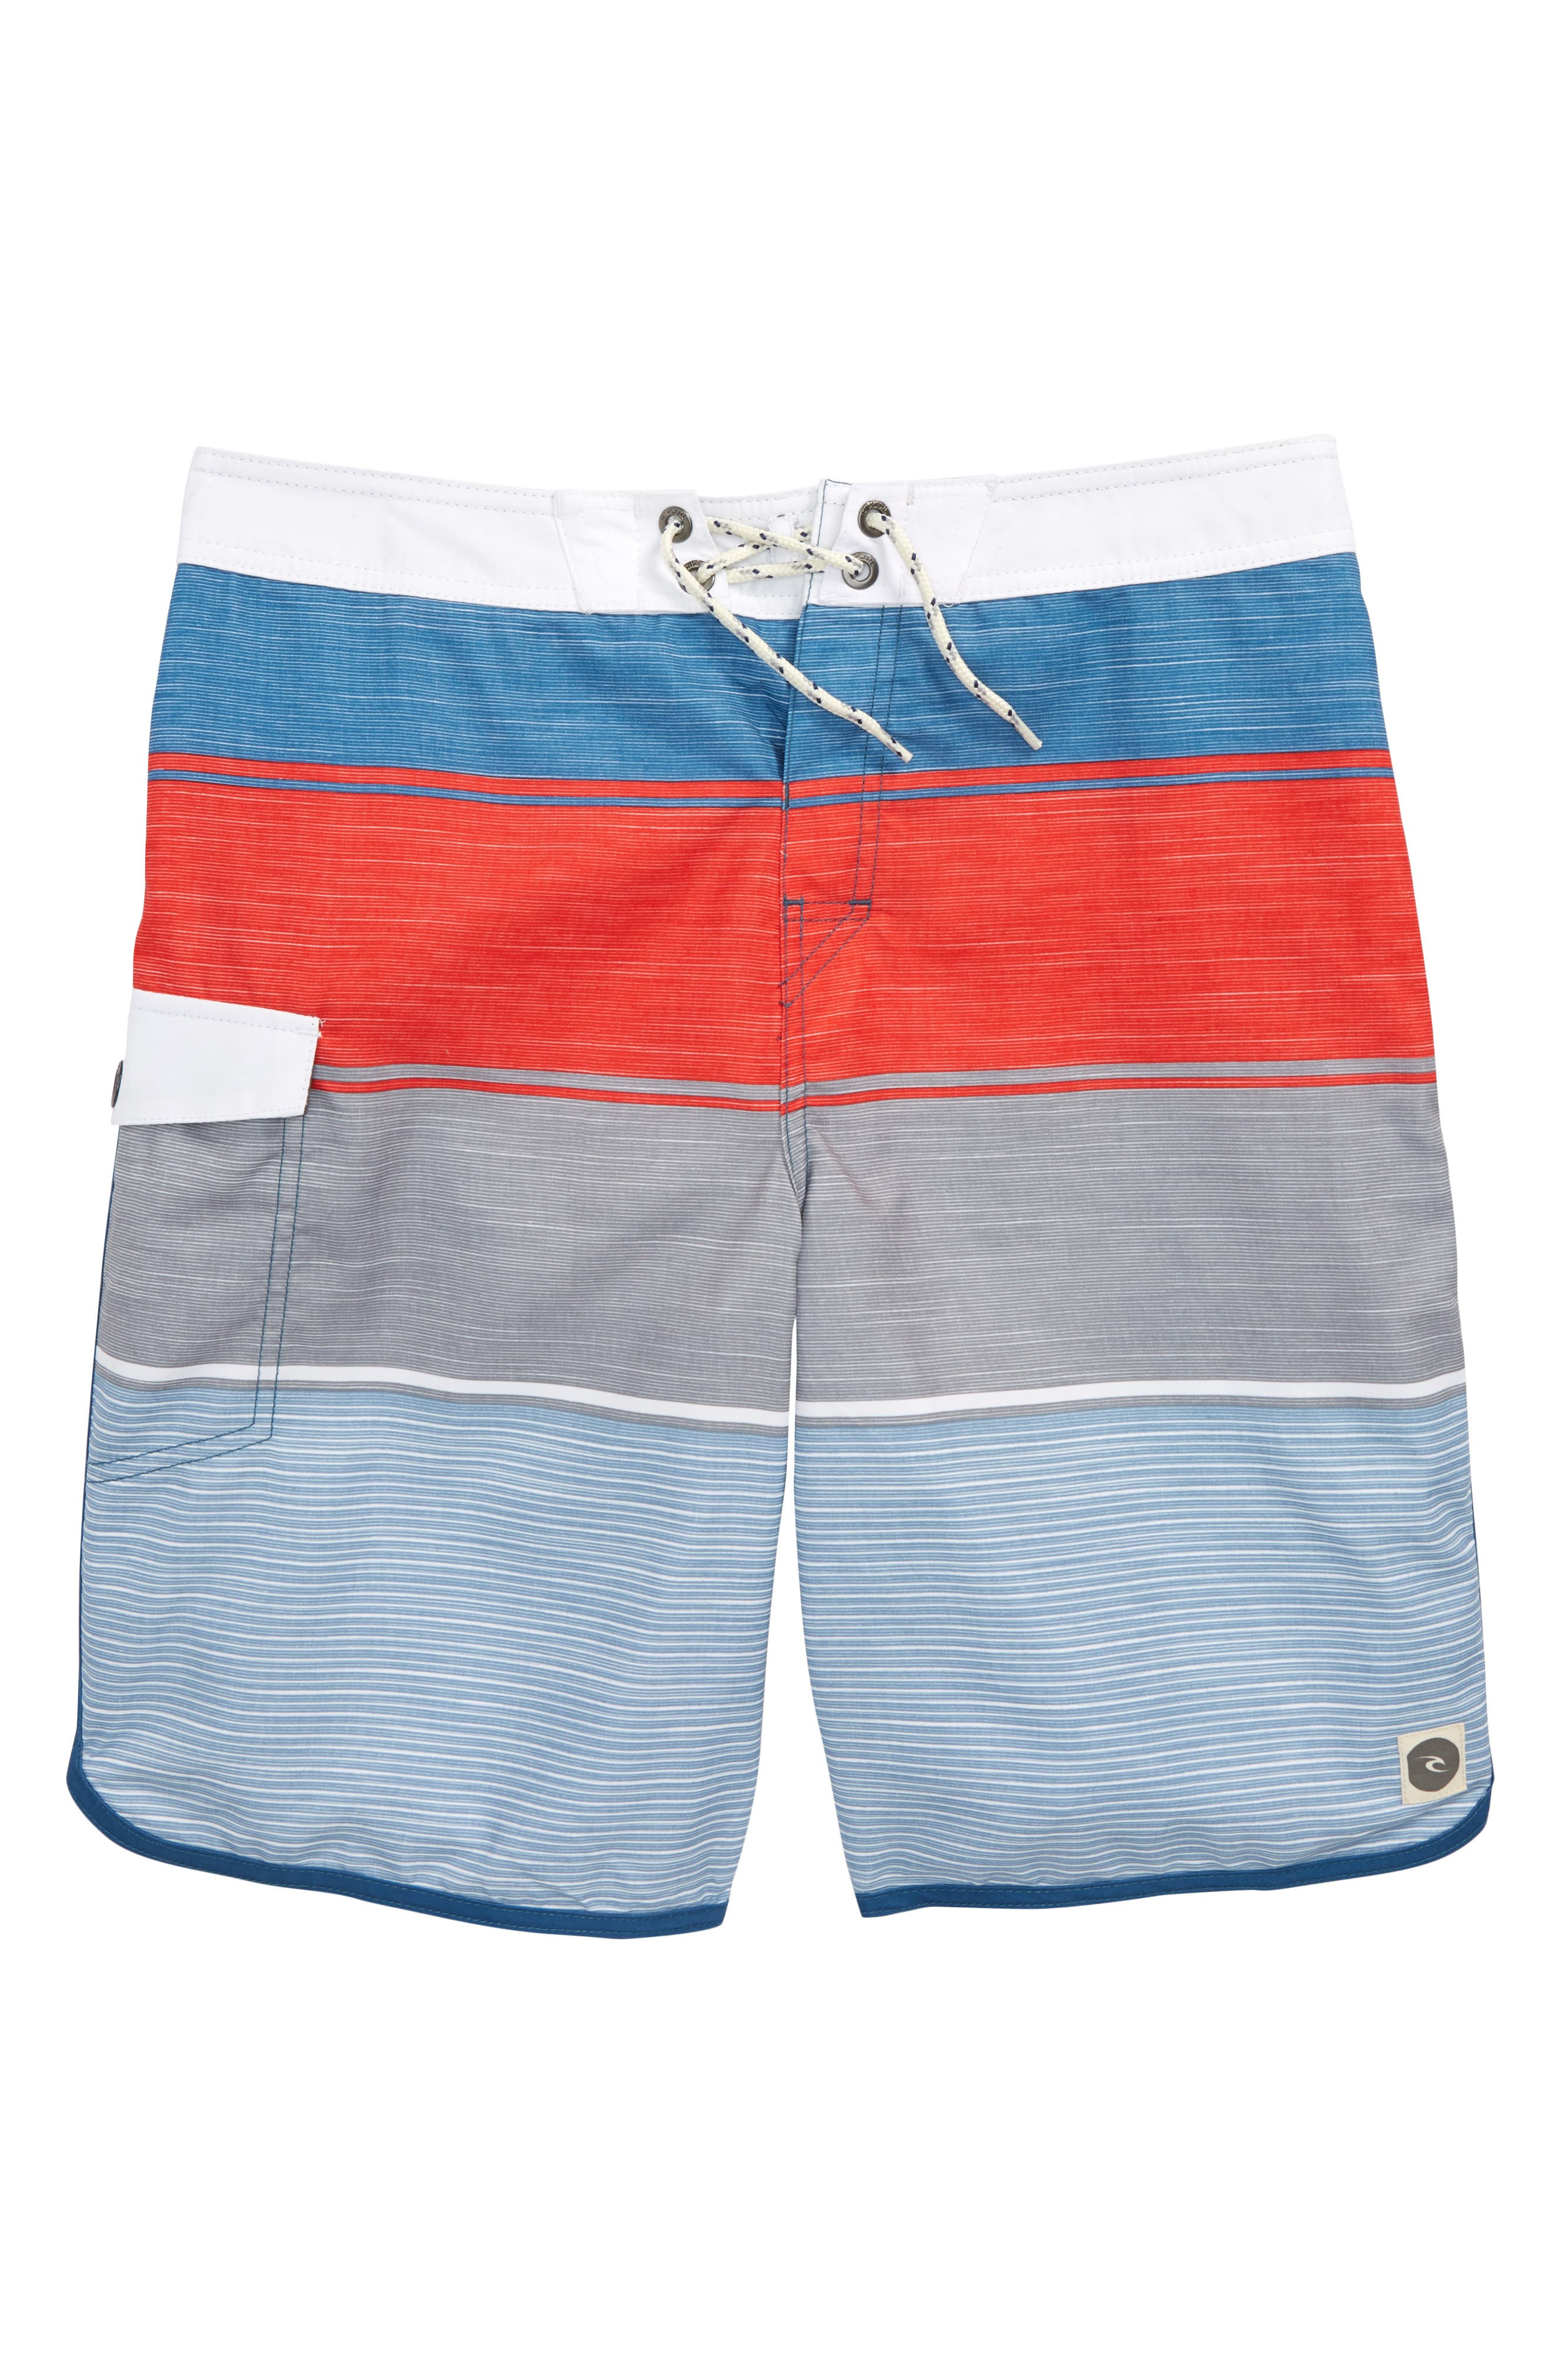 RIP CURL Good Times Board Shorts, Main, color, 600